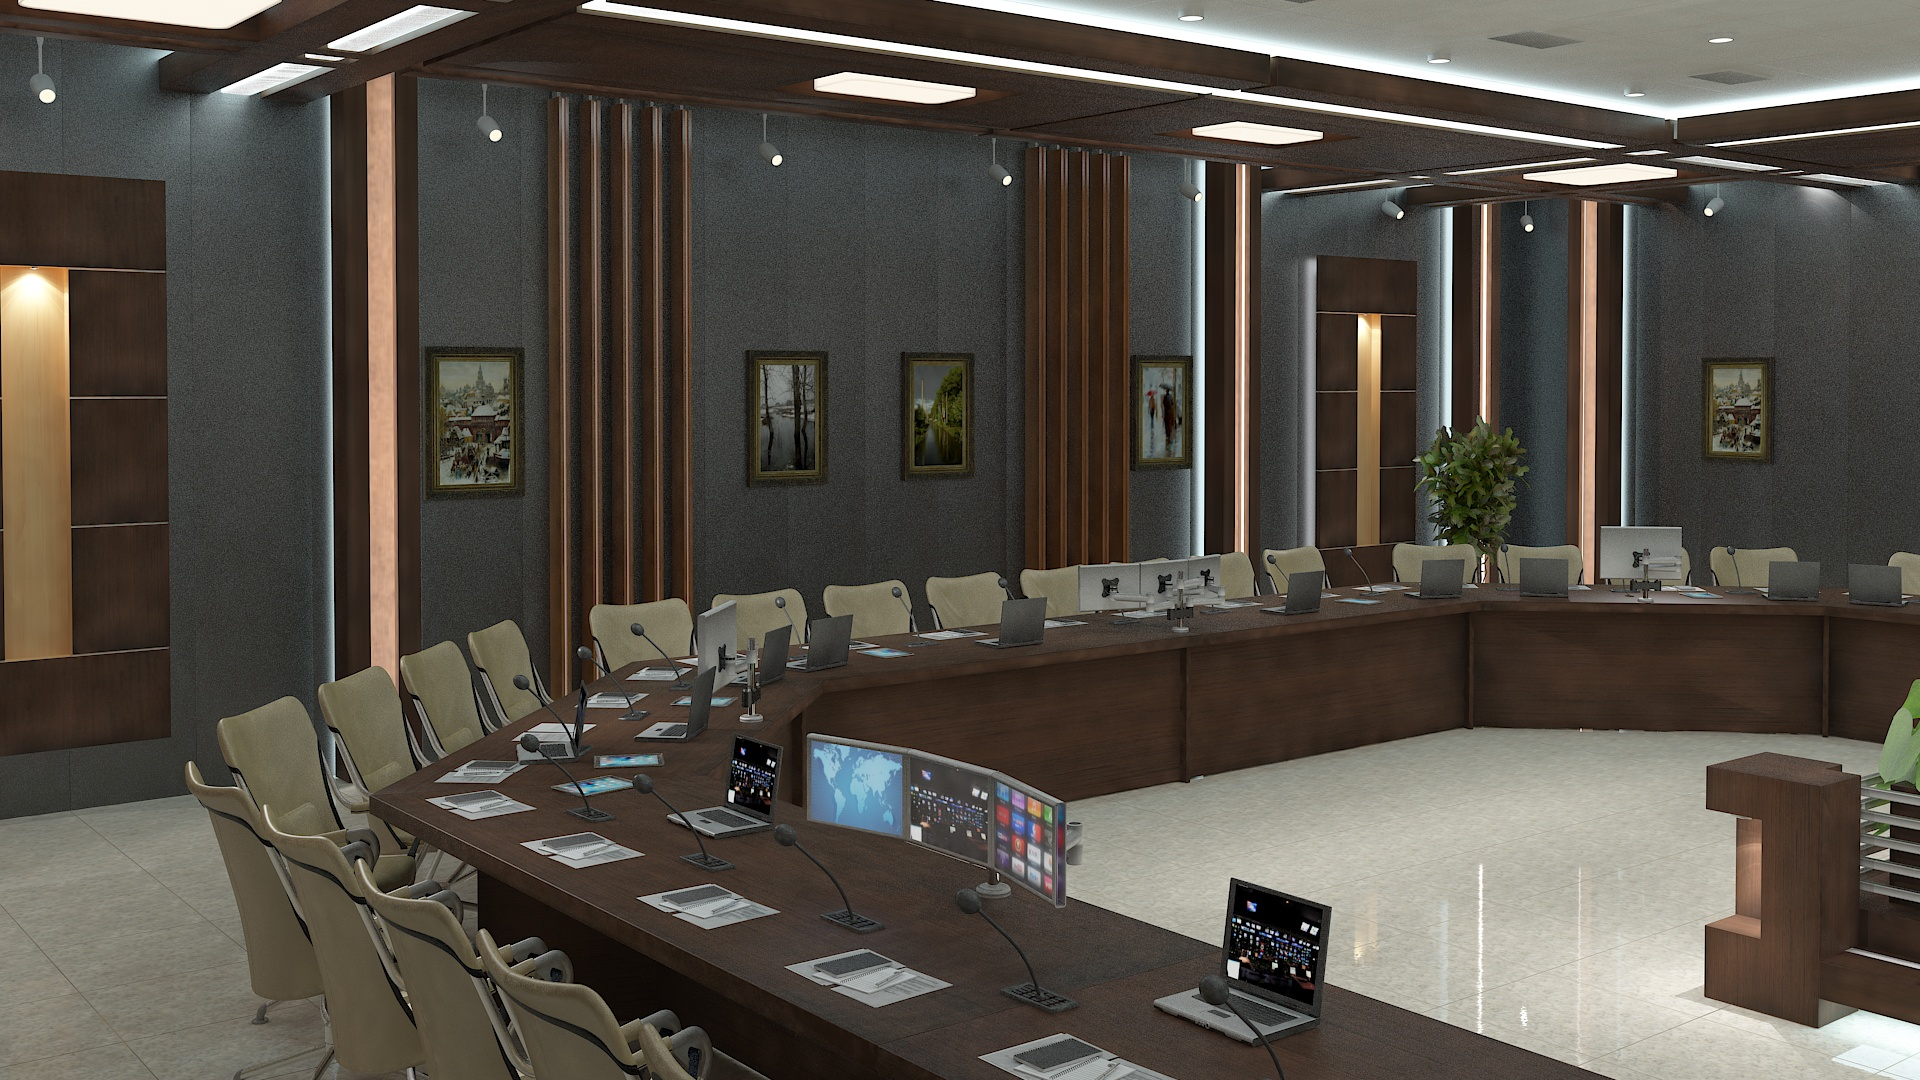 meeting room 1 3d model 3ds max dxf dwg 288134